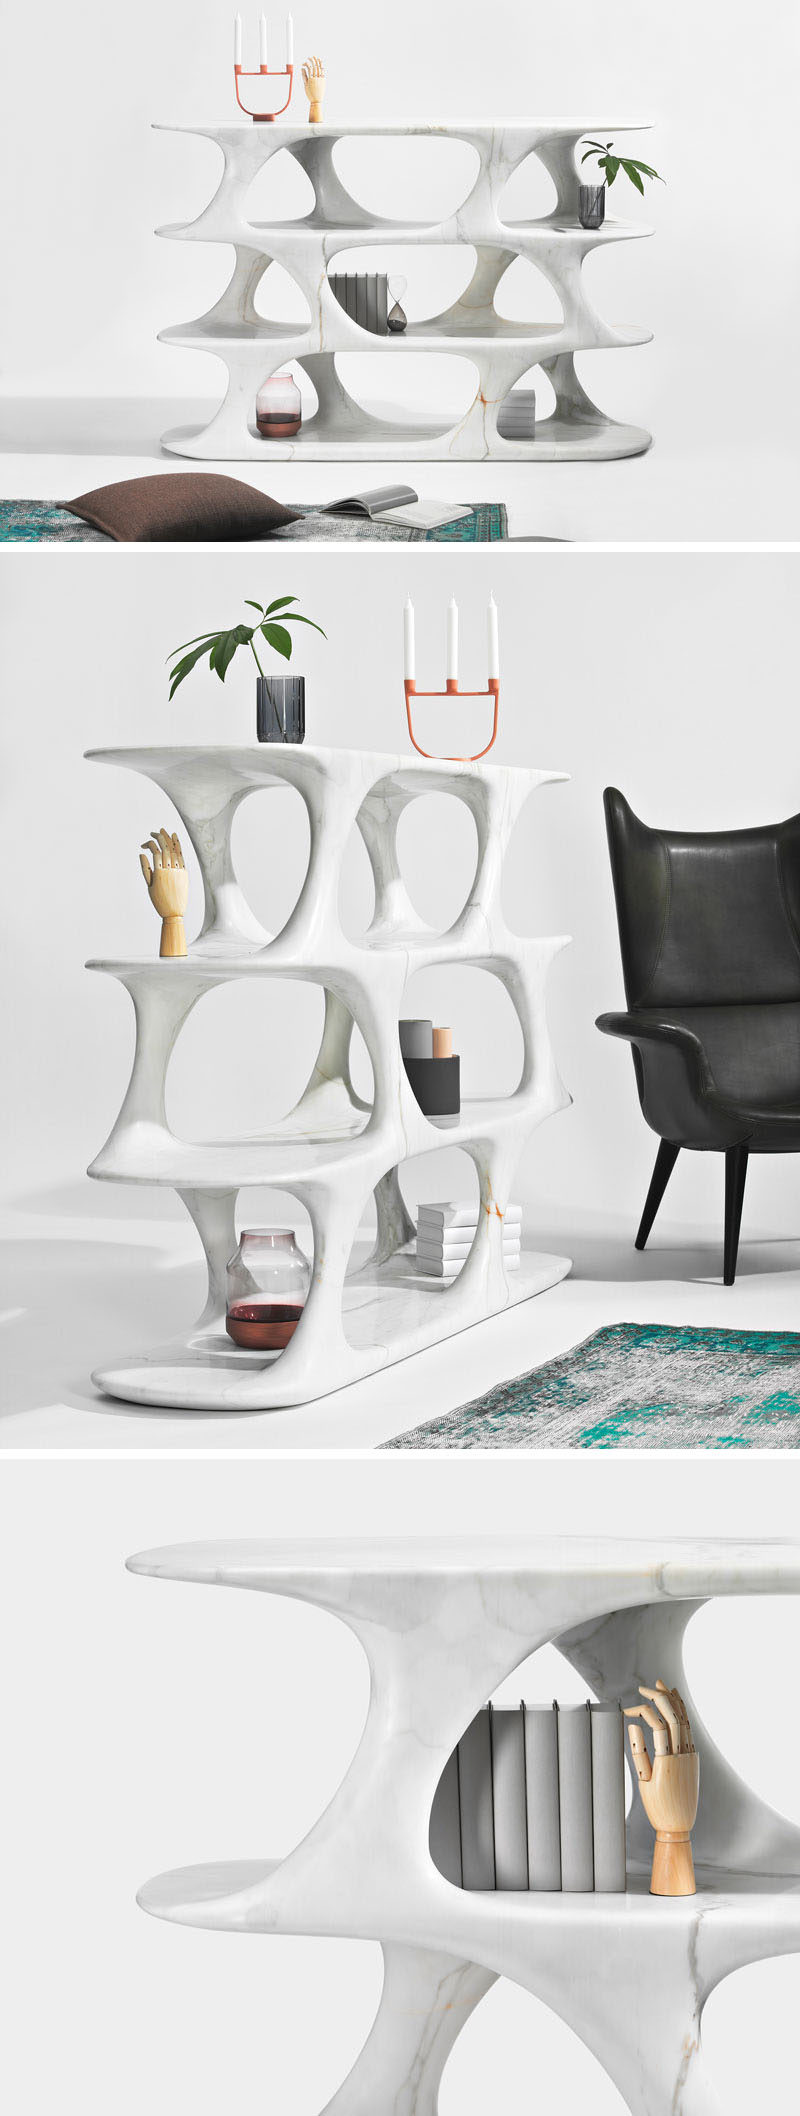 Austrian designer Rainer Mutsch has created a collection of contemporary furniture made entirely out of marble, that includes a sculptural bookshelf.